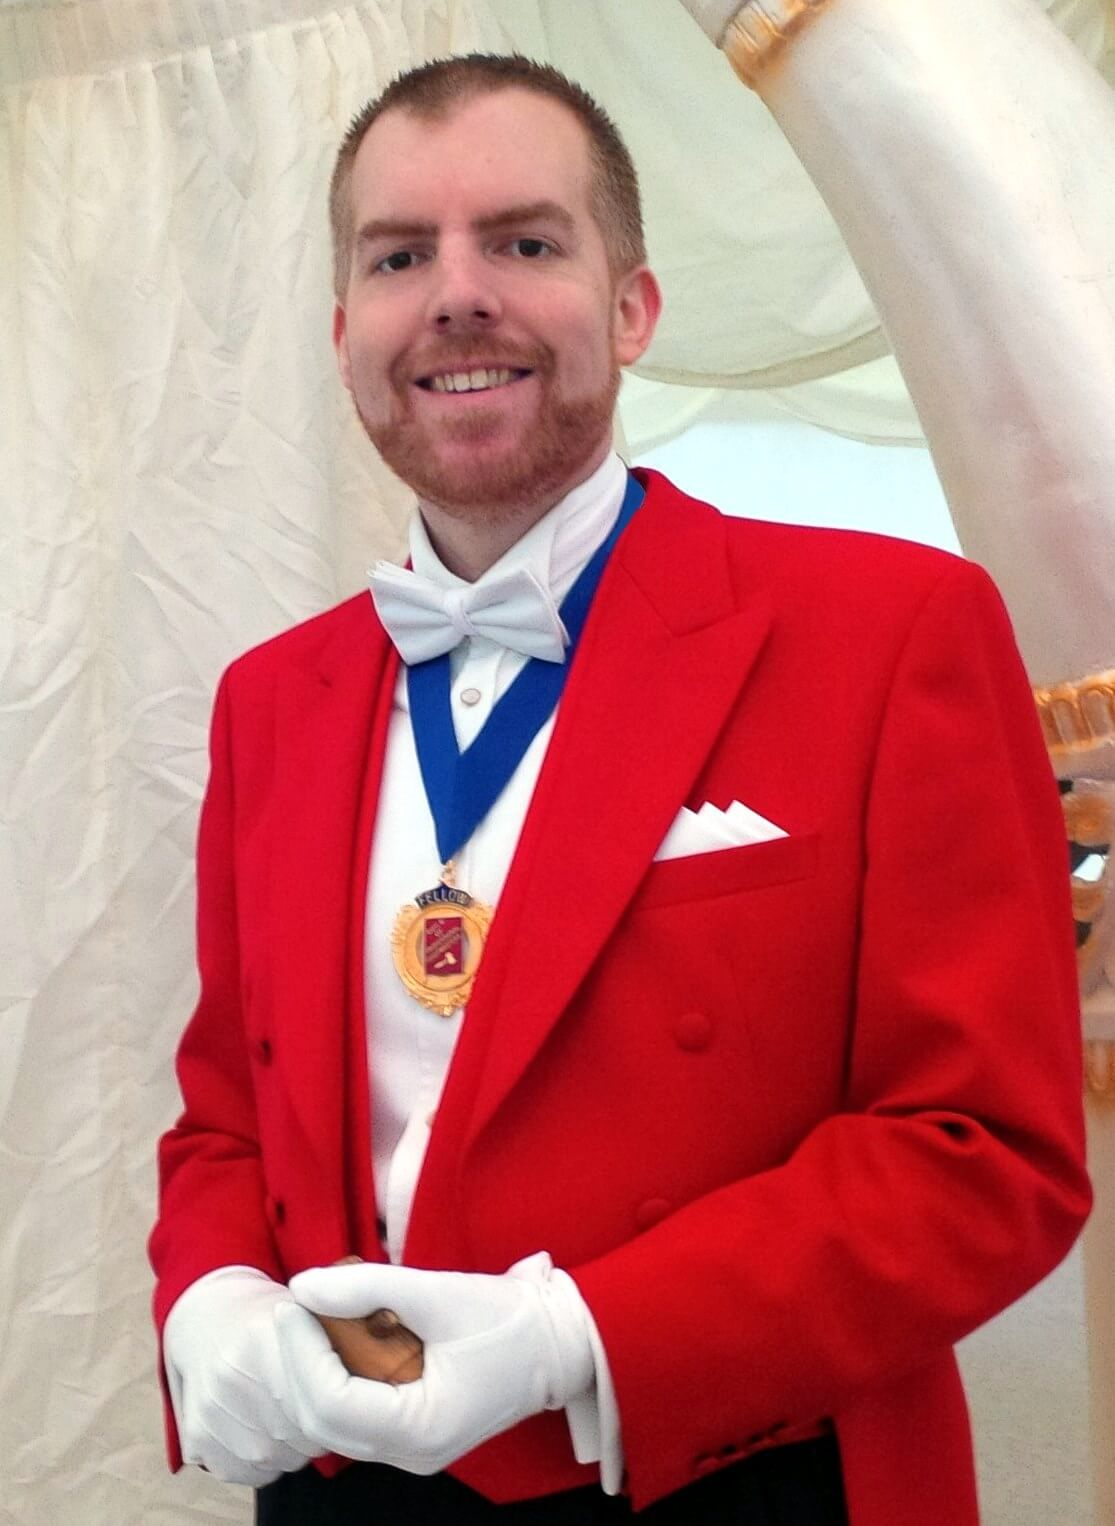 Professional Toastmaster and Master of Ceremonies Suffolk - Dan Heath